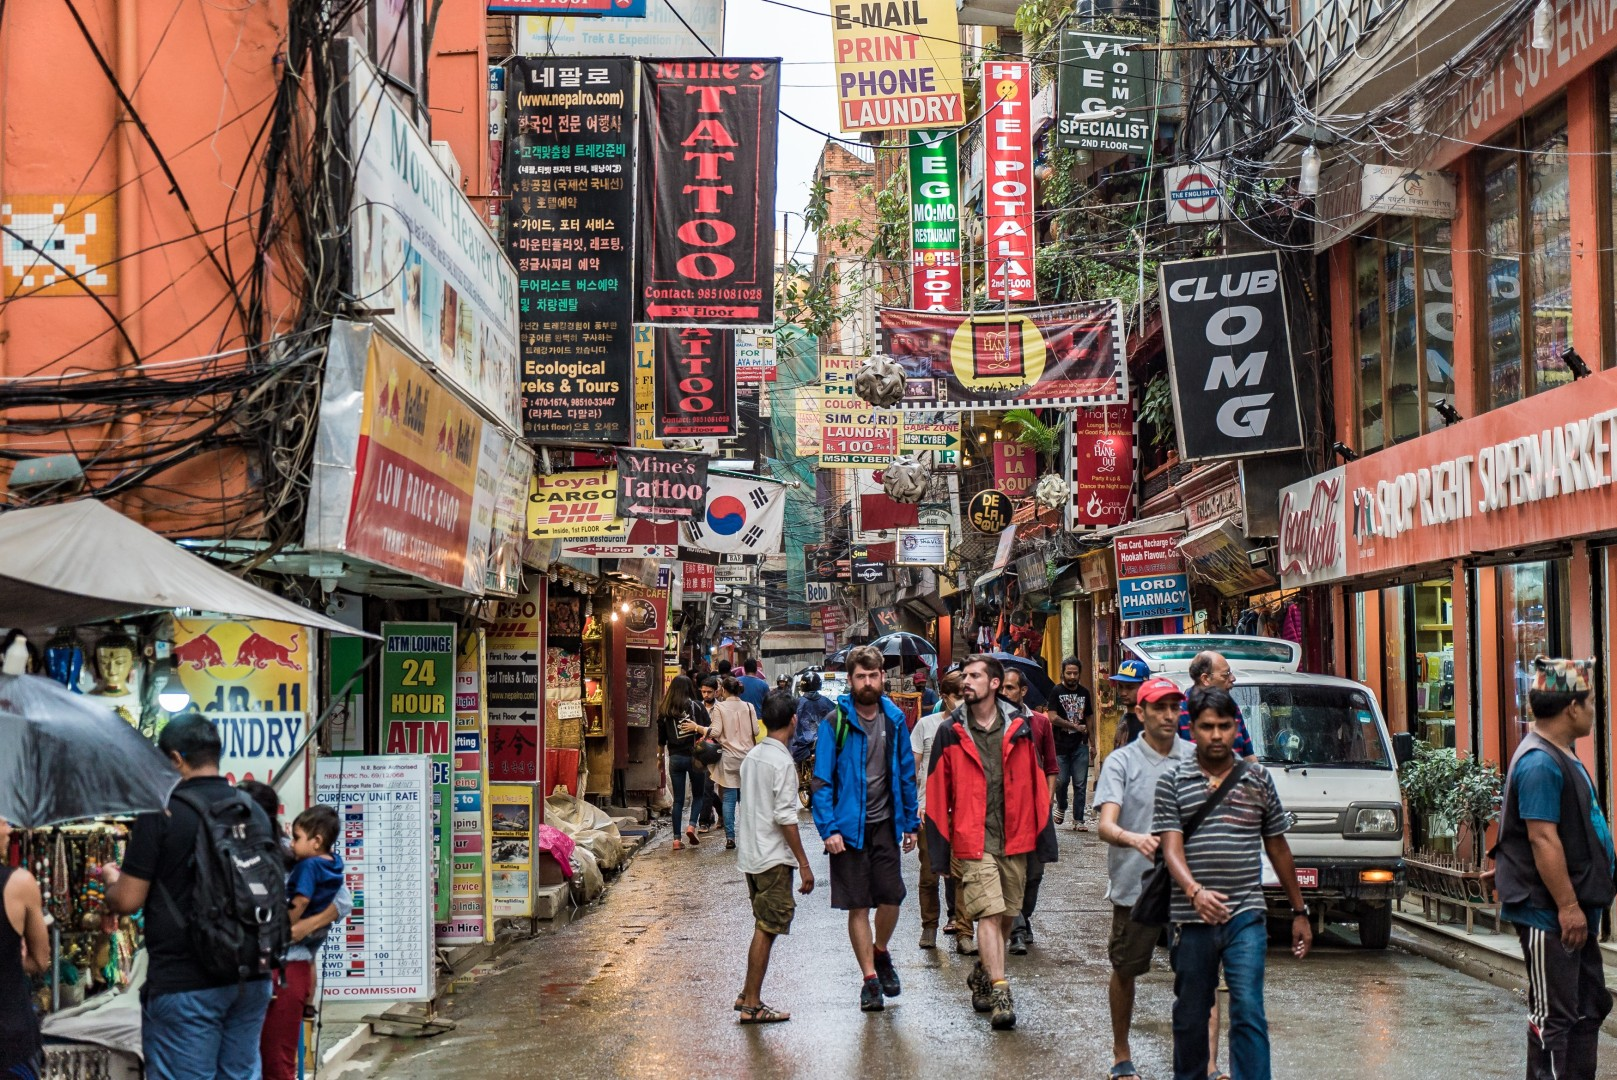 Chinese tourists are flooding into Nepal, and the floodgates